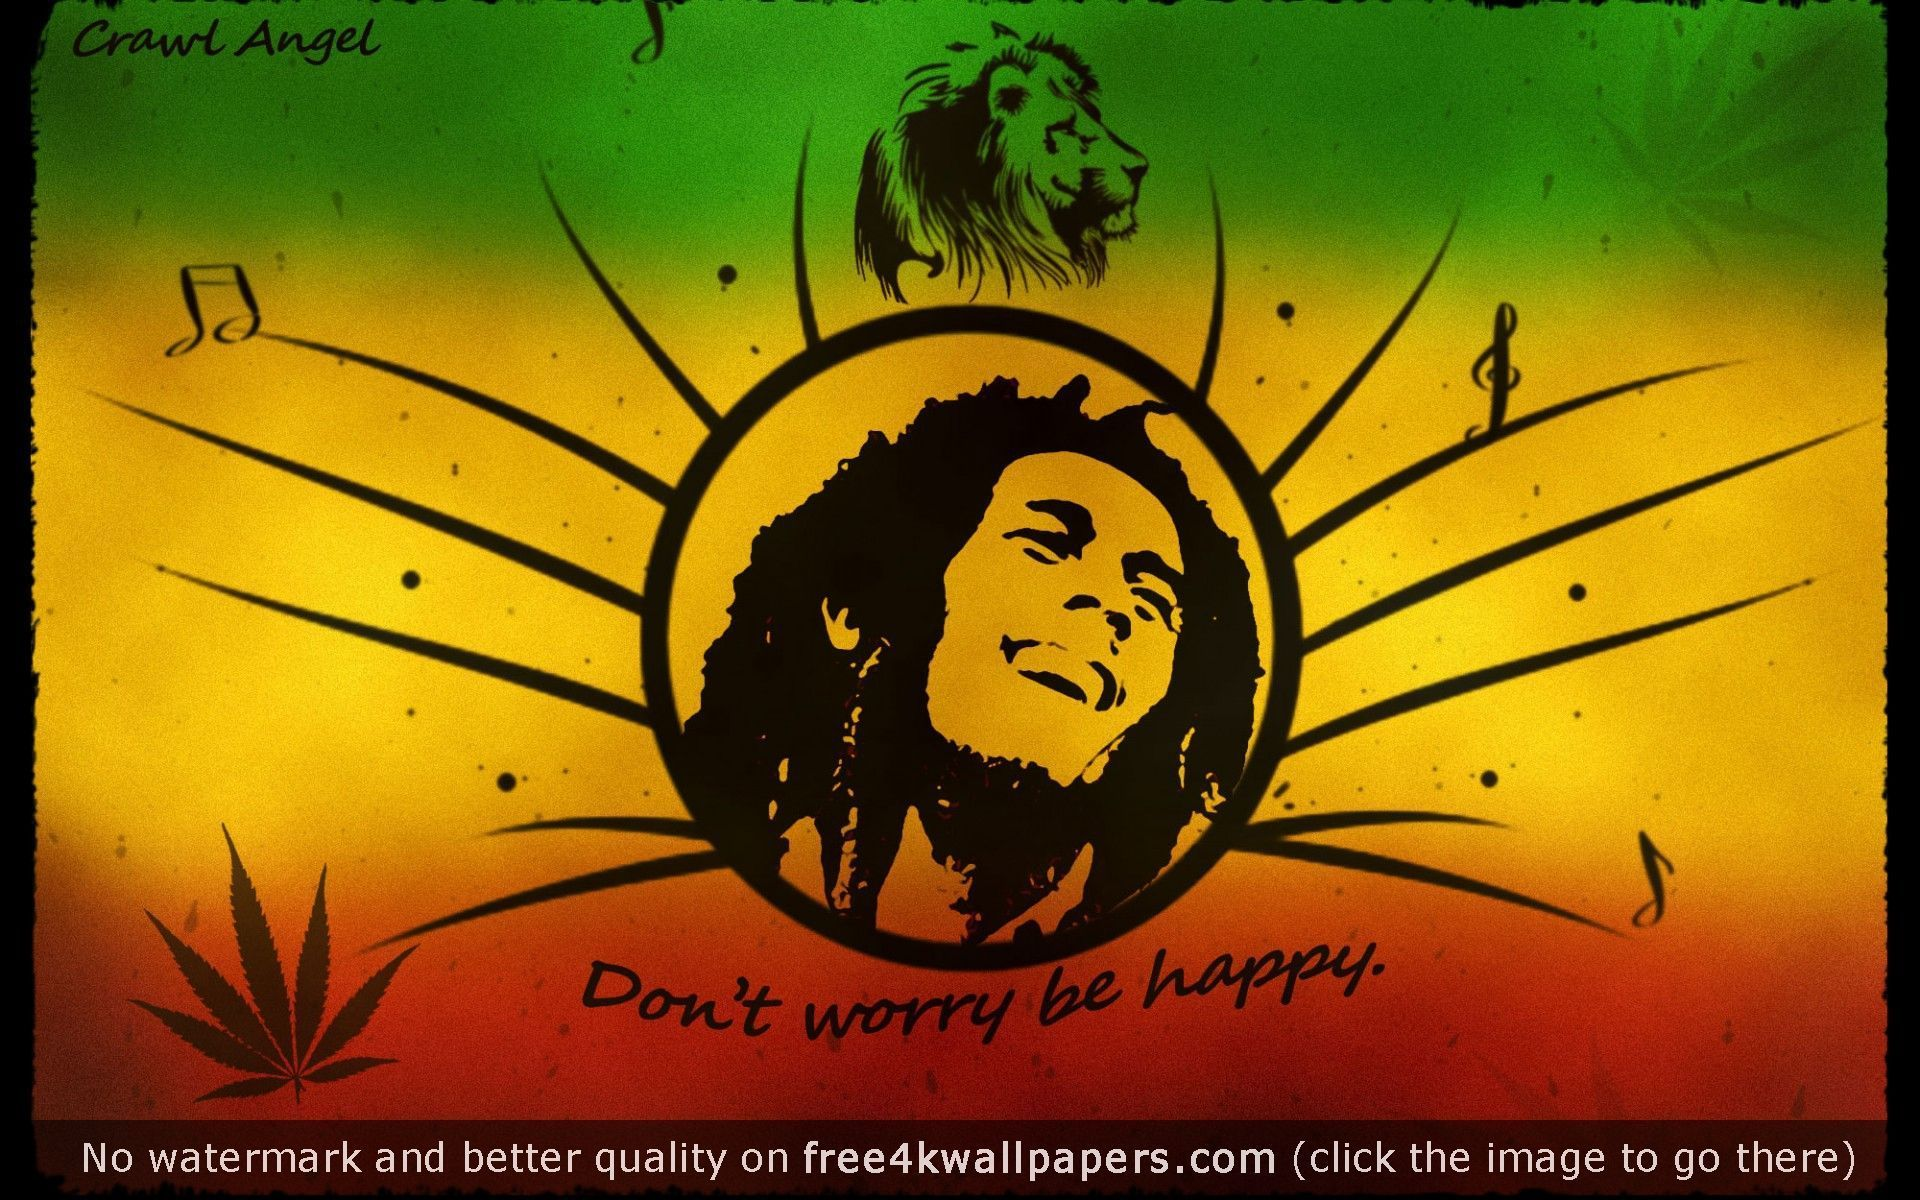 Marley 4k Wallpapers For Your Desktop Or Mobile Screen Free And Easy To Download Happy Wallpaper Bob Marley Bob Marley Painting